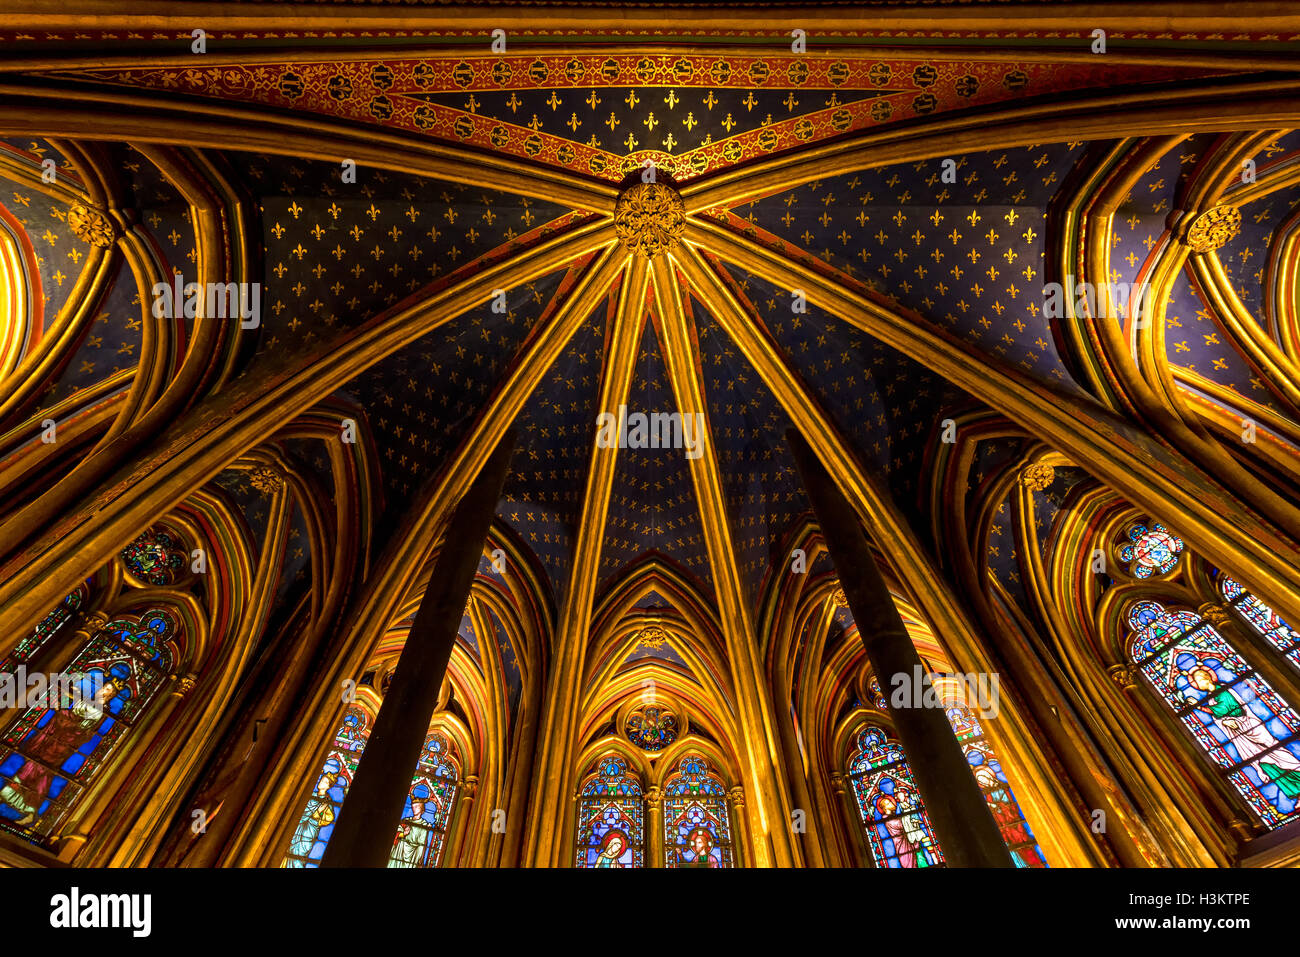 Rayonnant Gothic vaulted ceiling of lower chapel of Sainte Chapelle, Ile de la Cite, Paris, France - Stock Image